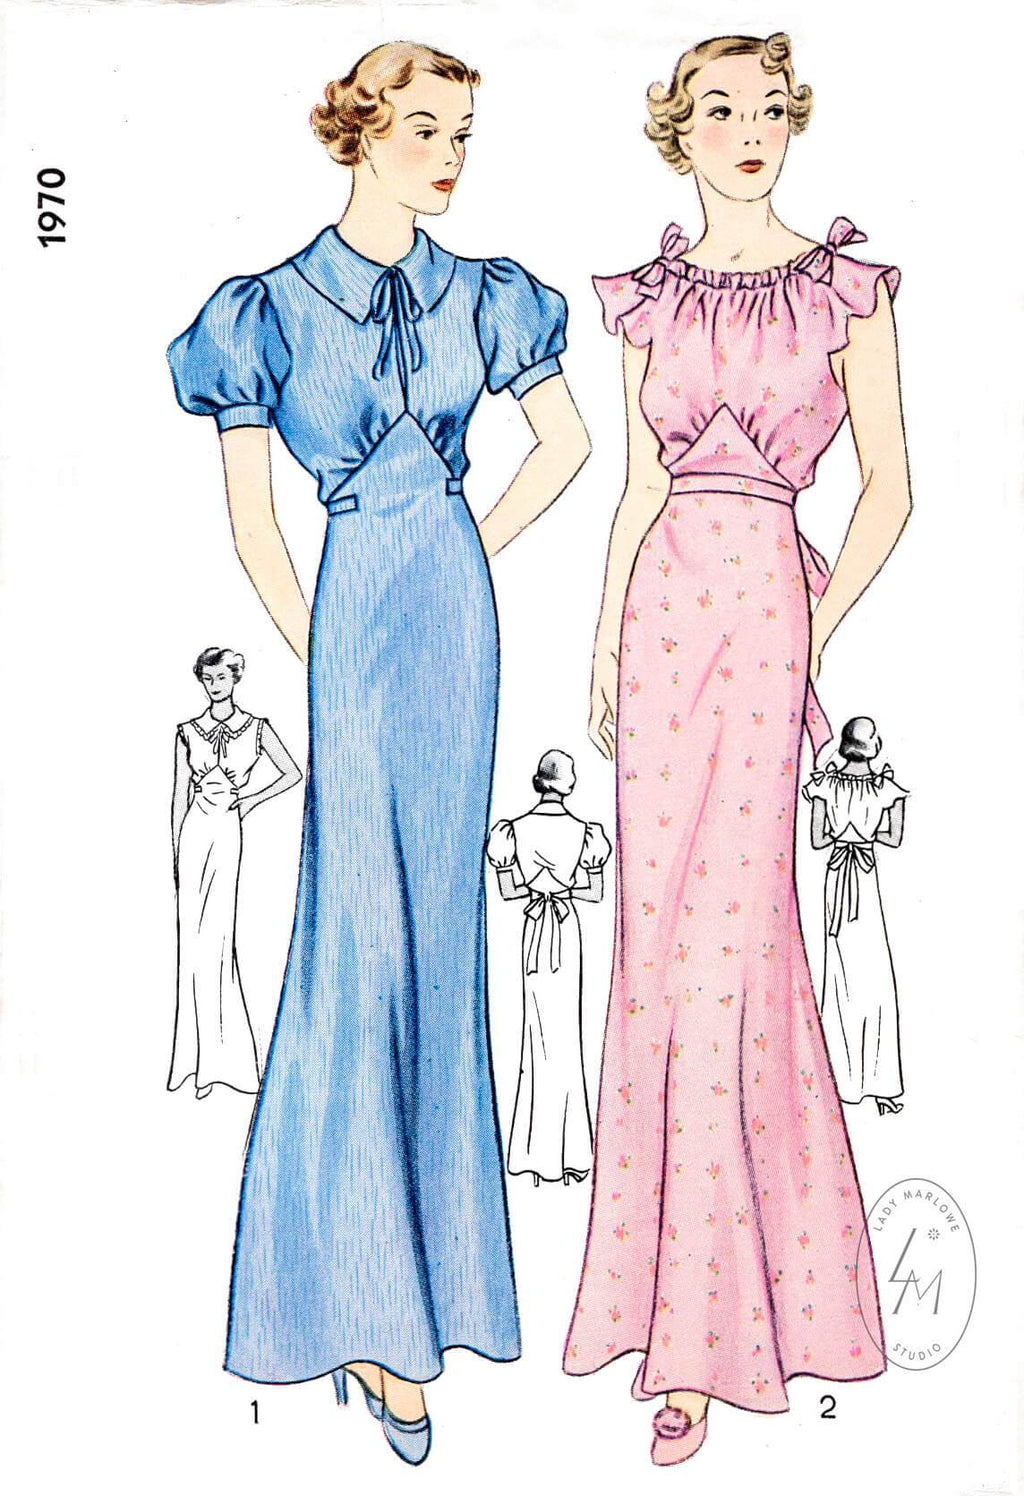 Simplicity 1970 1930s 1936 evening negligee flutter sleeves vintage sewing pattern reproduction